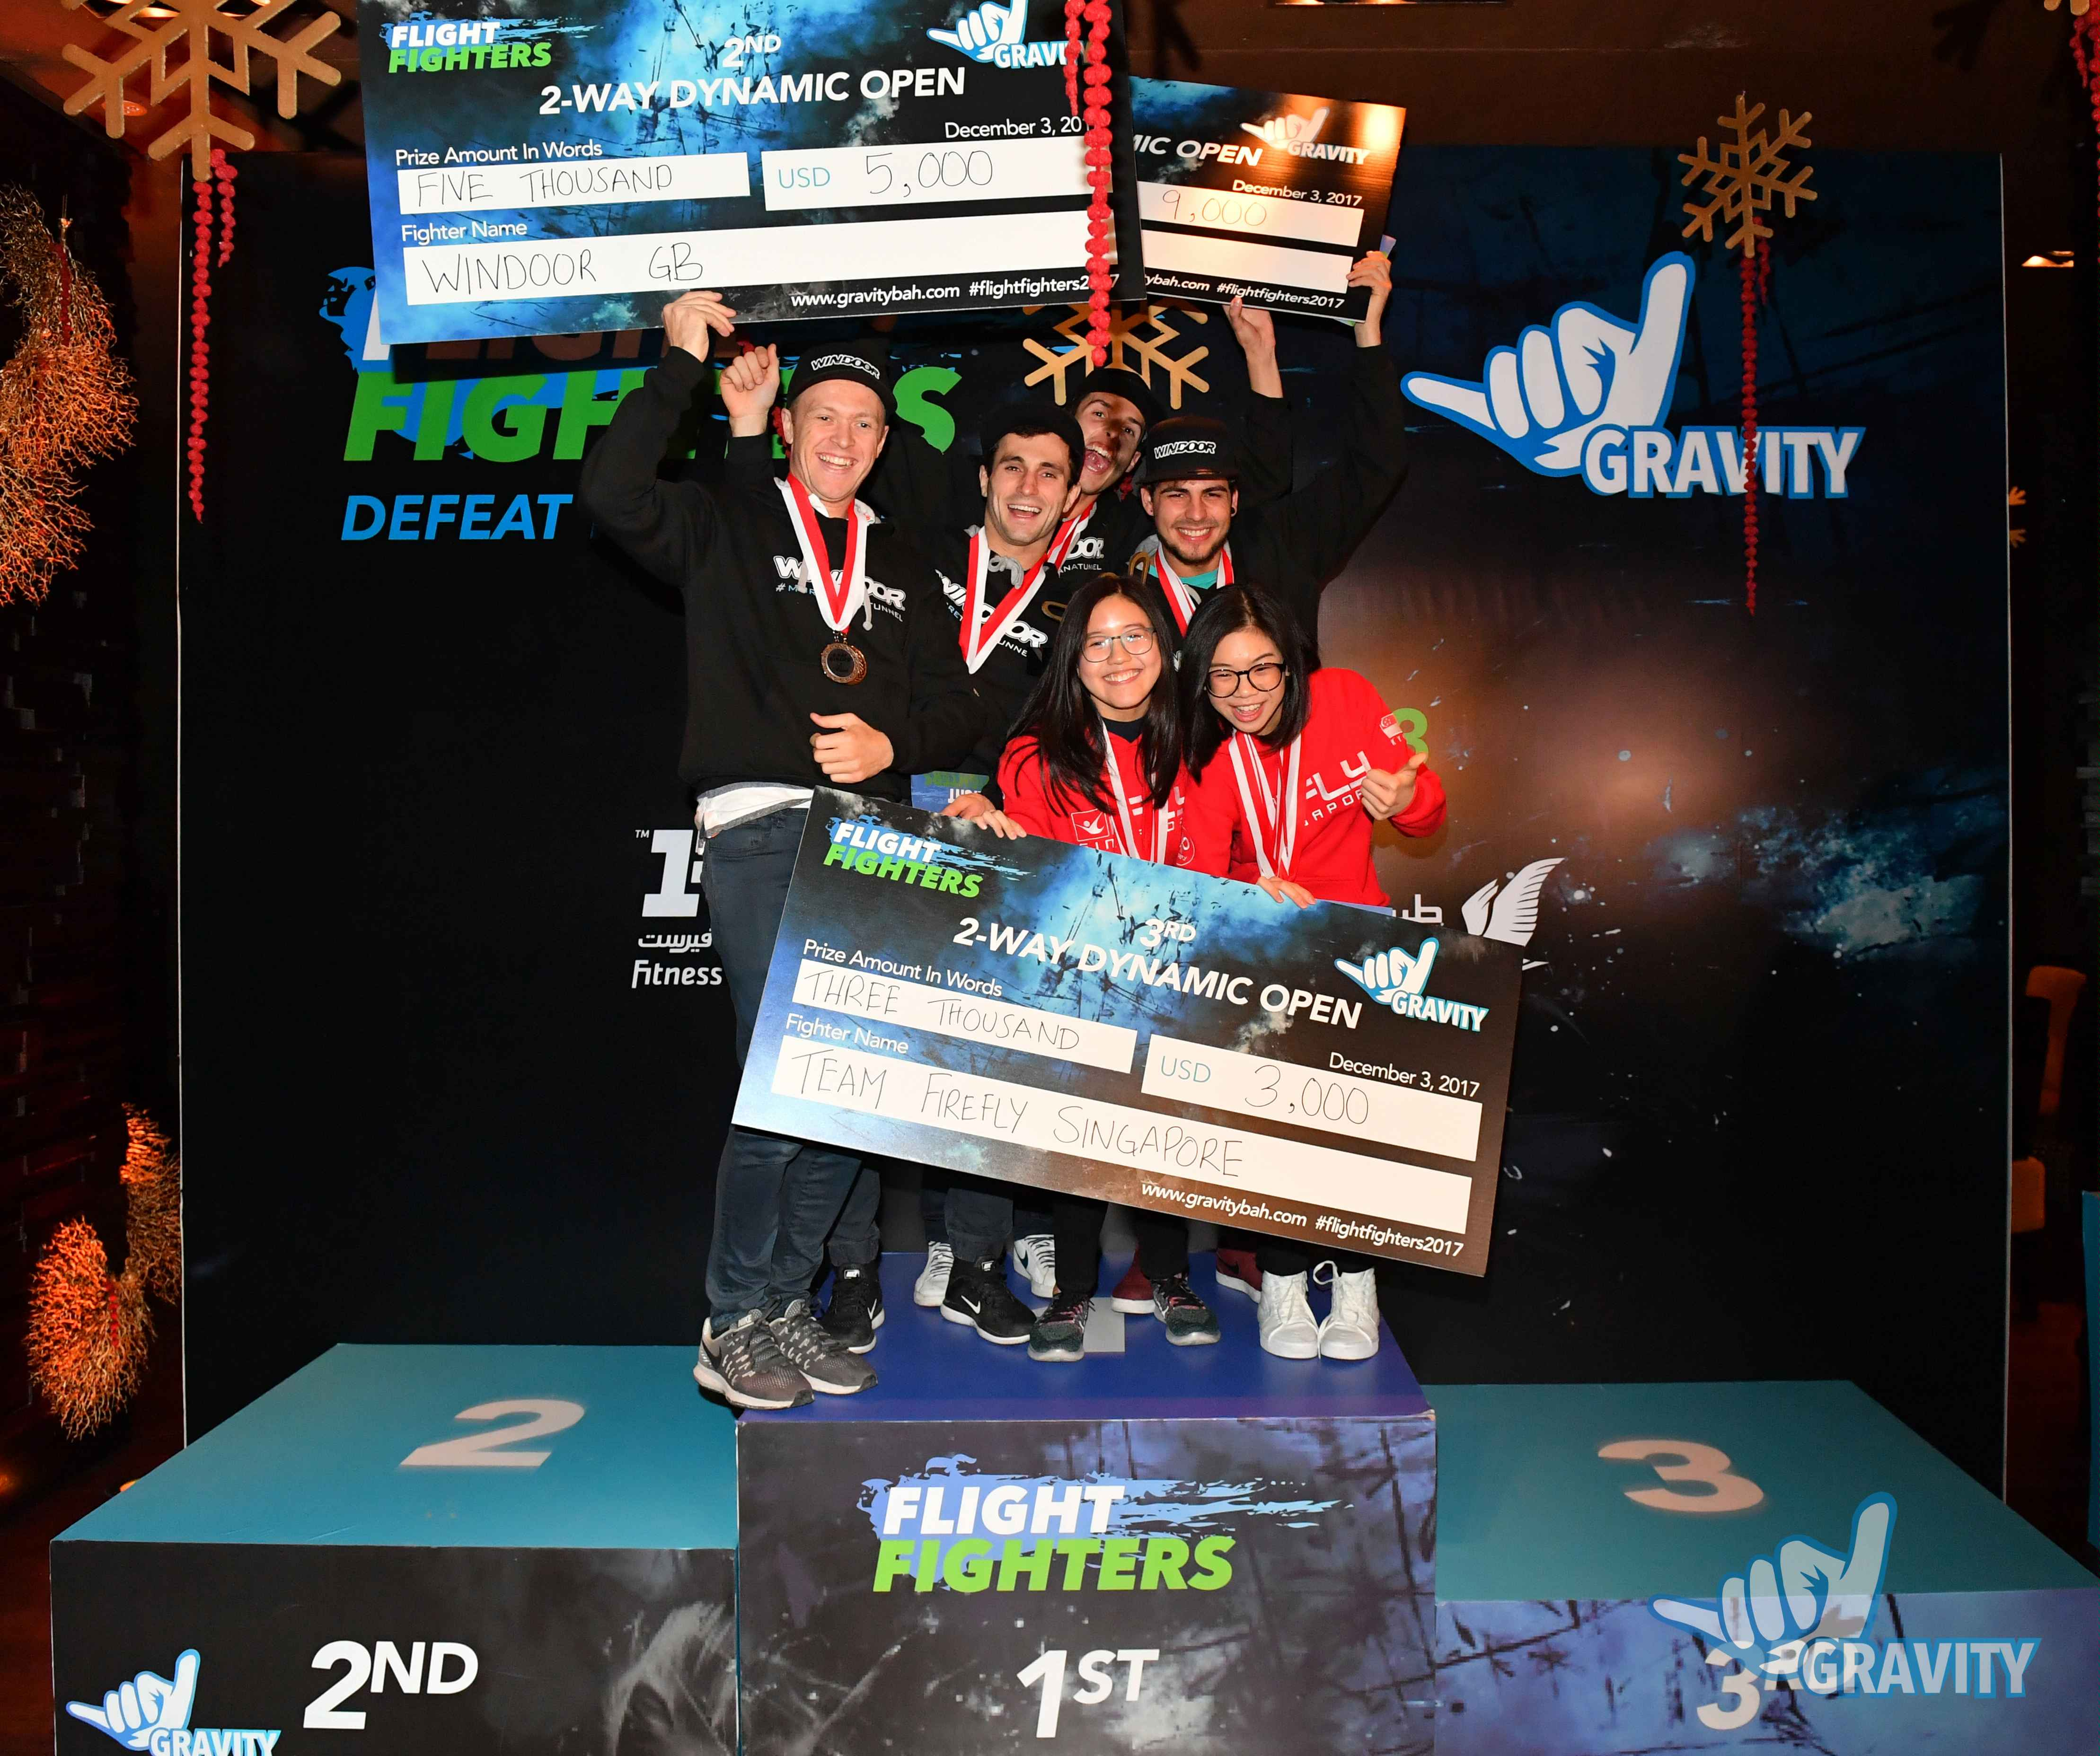 Dynamic 2-way team medal-winners, sharing their joy at Flight Fighters competition 2017, Gravity, Bahrain